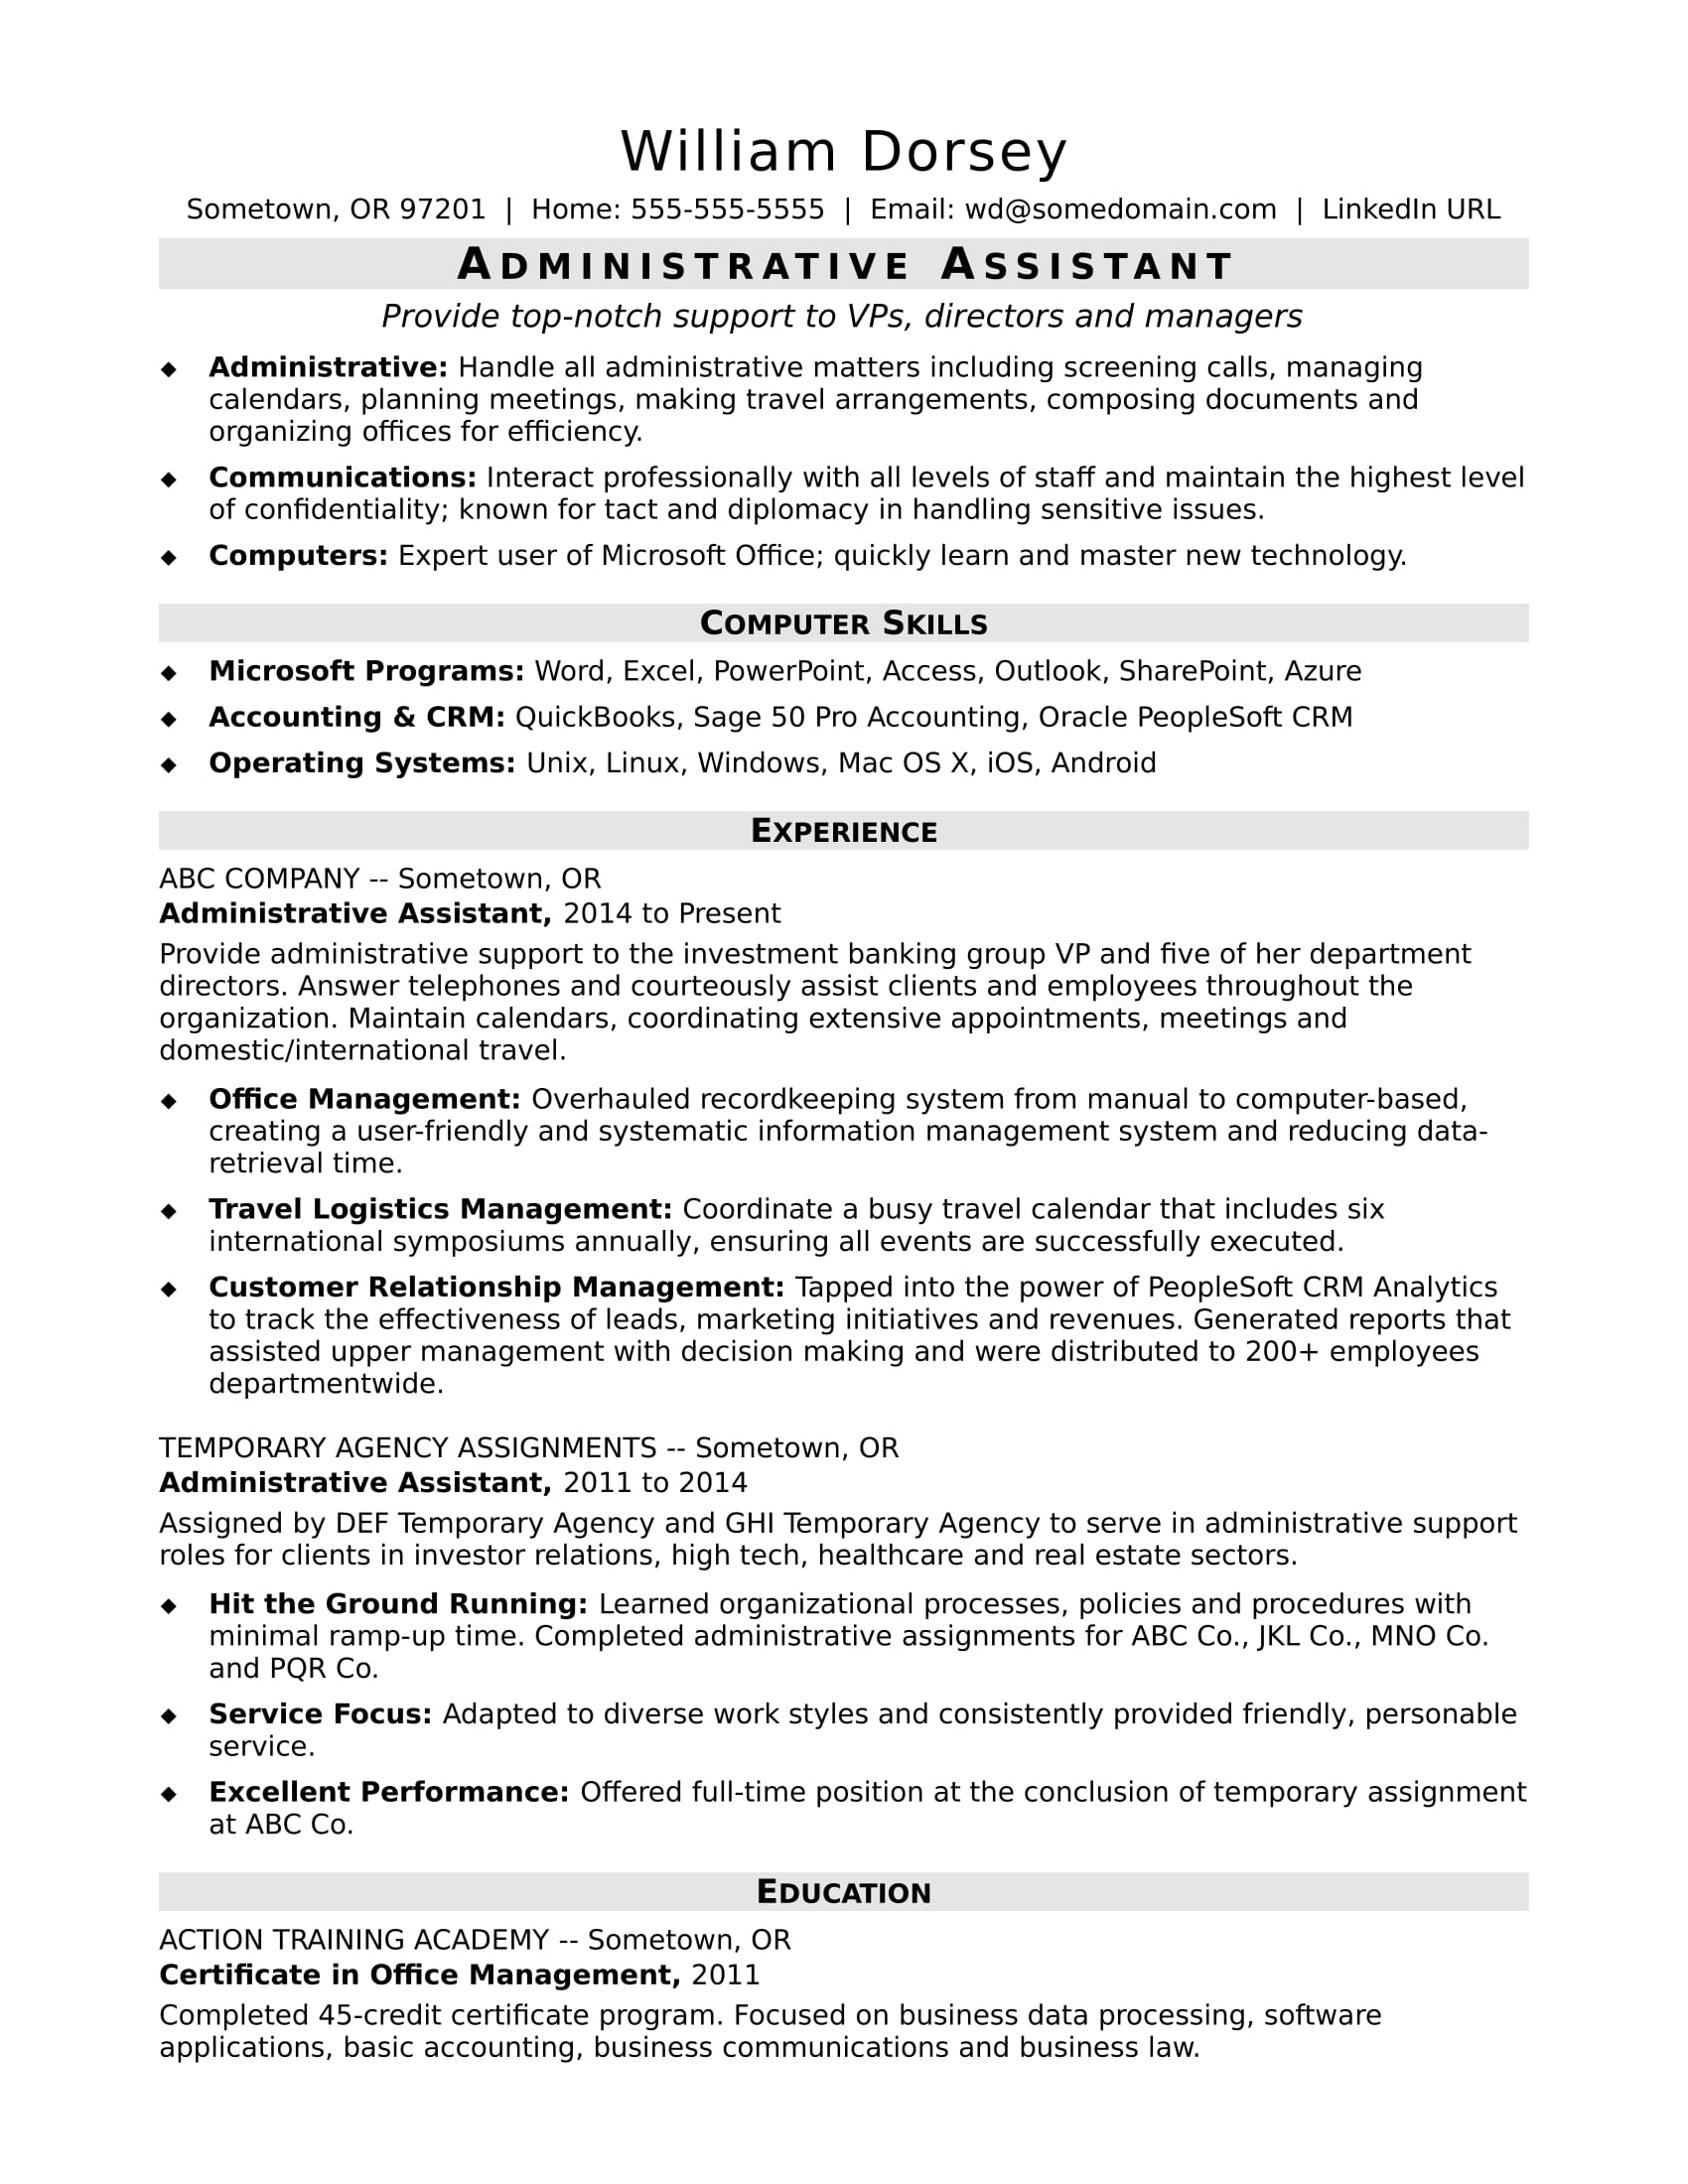 midlevel administrative assistant resume sample monster patient administration specialist Resume Patient Administration Specialist Resume